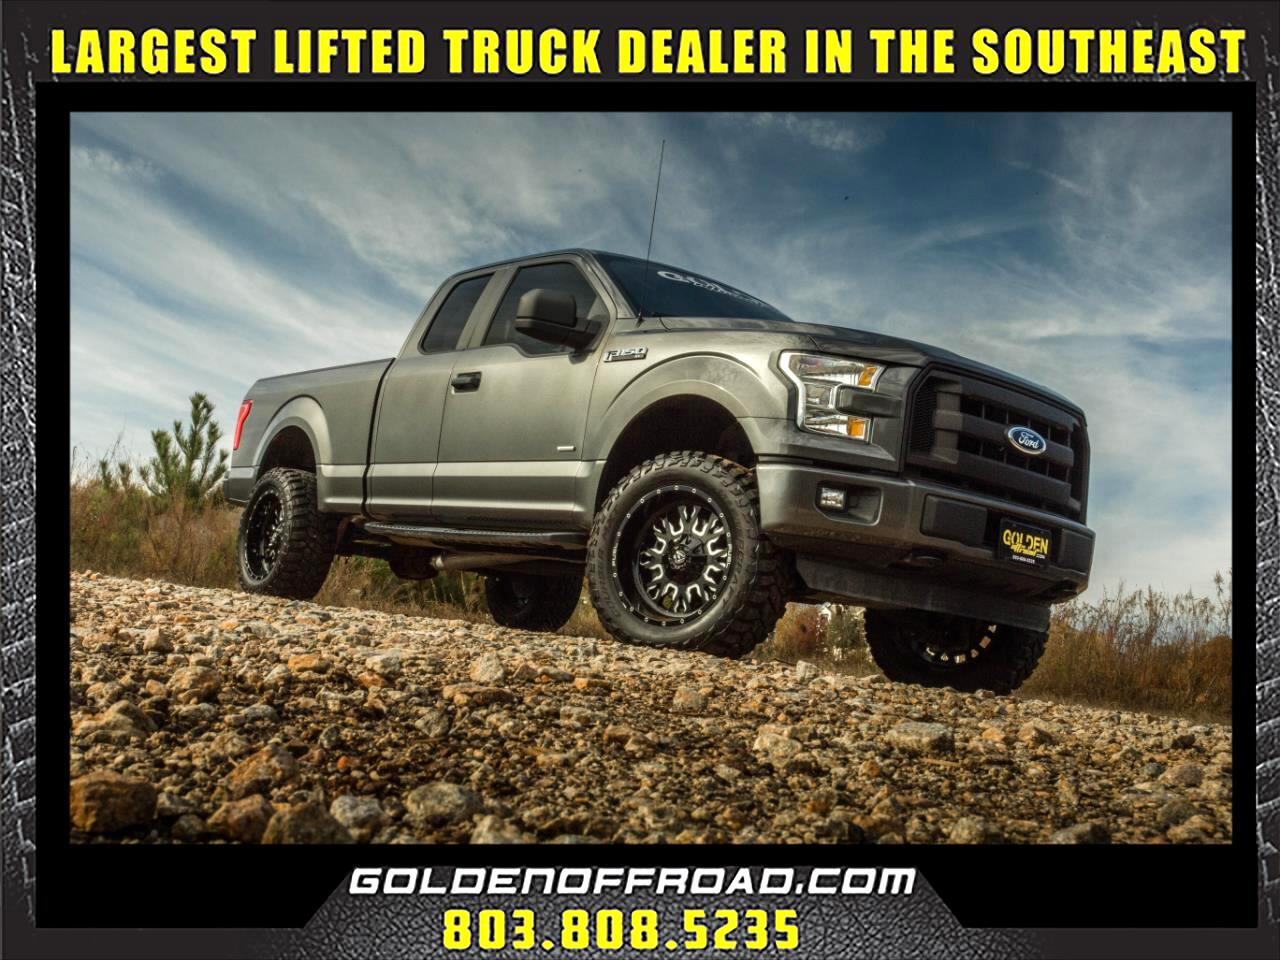 2015 Ford F-150 4WD SuperCab Lifted FX4 Fuel Wheels, Ecoboost!